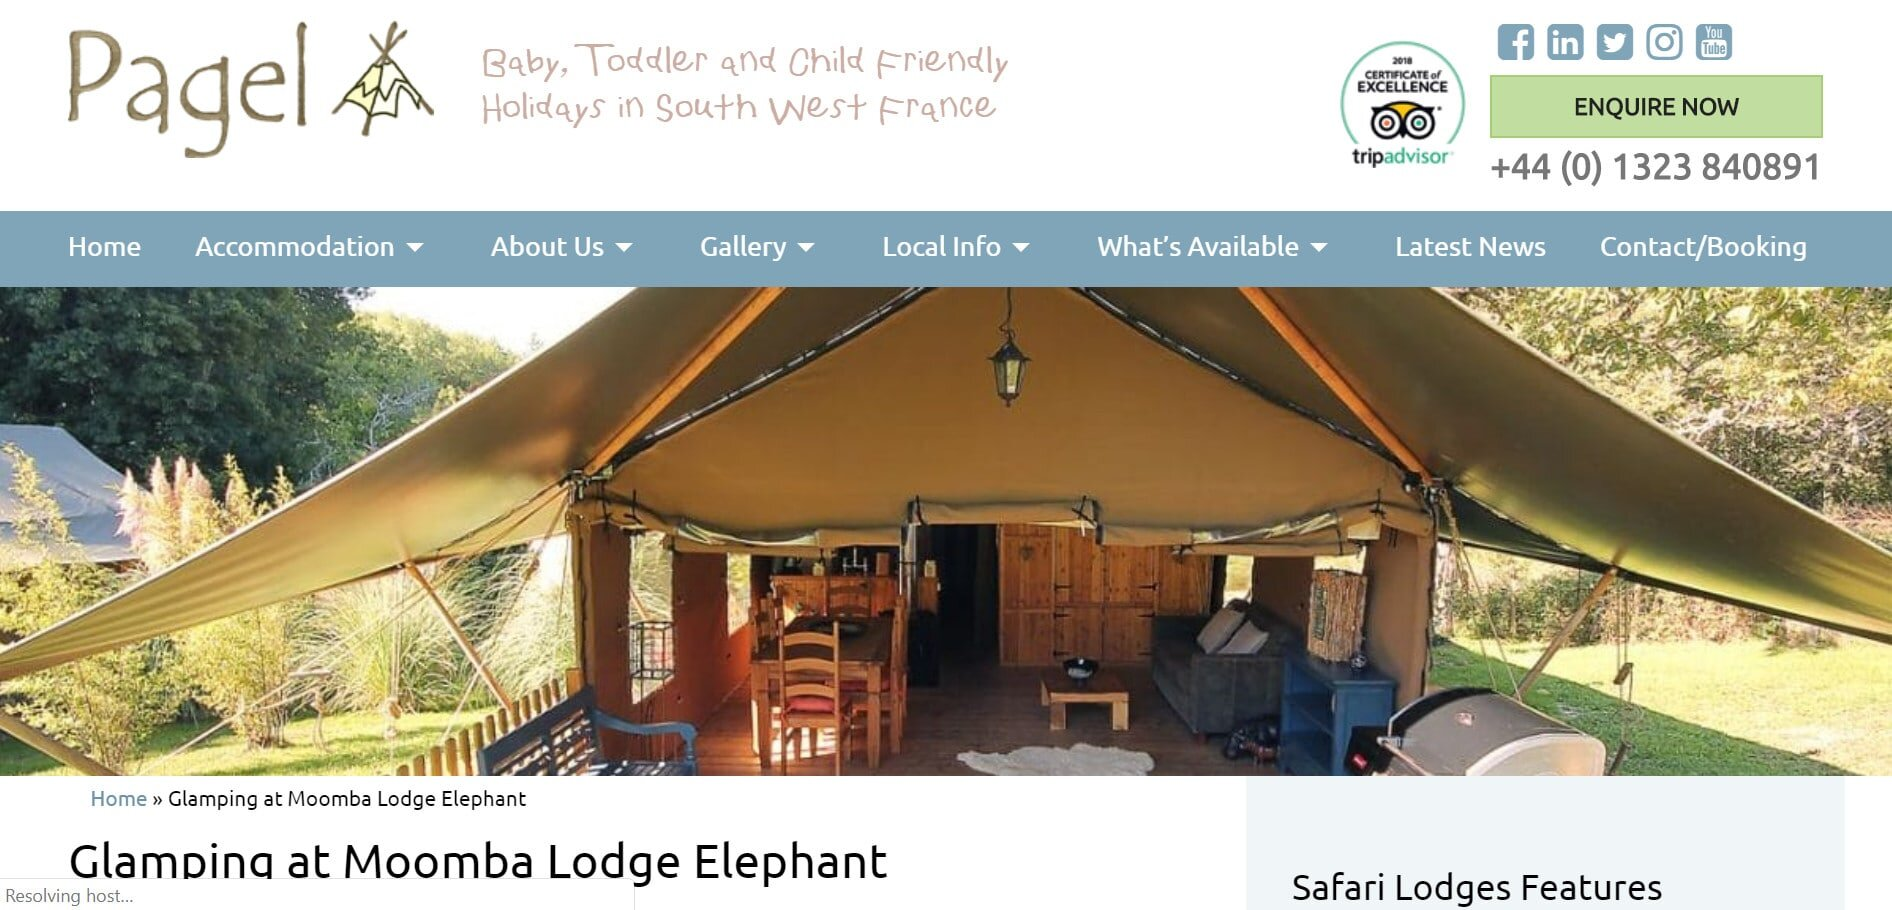 Here's another family-friendly south France site, ideal for anyone looking for glamping France opportunities.